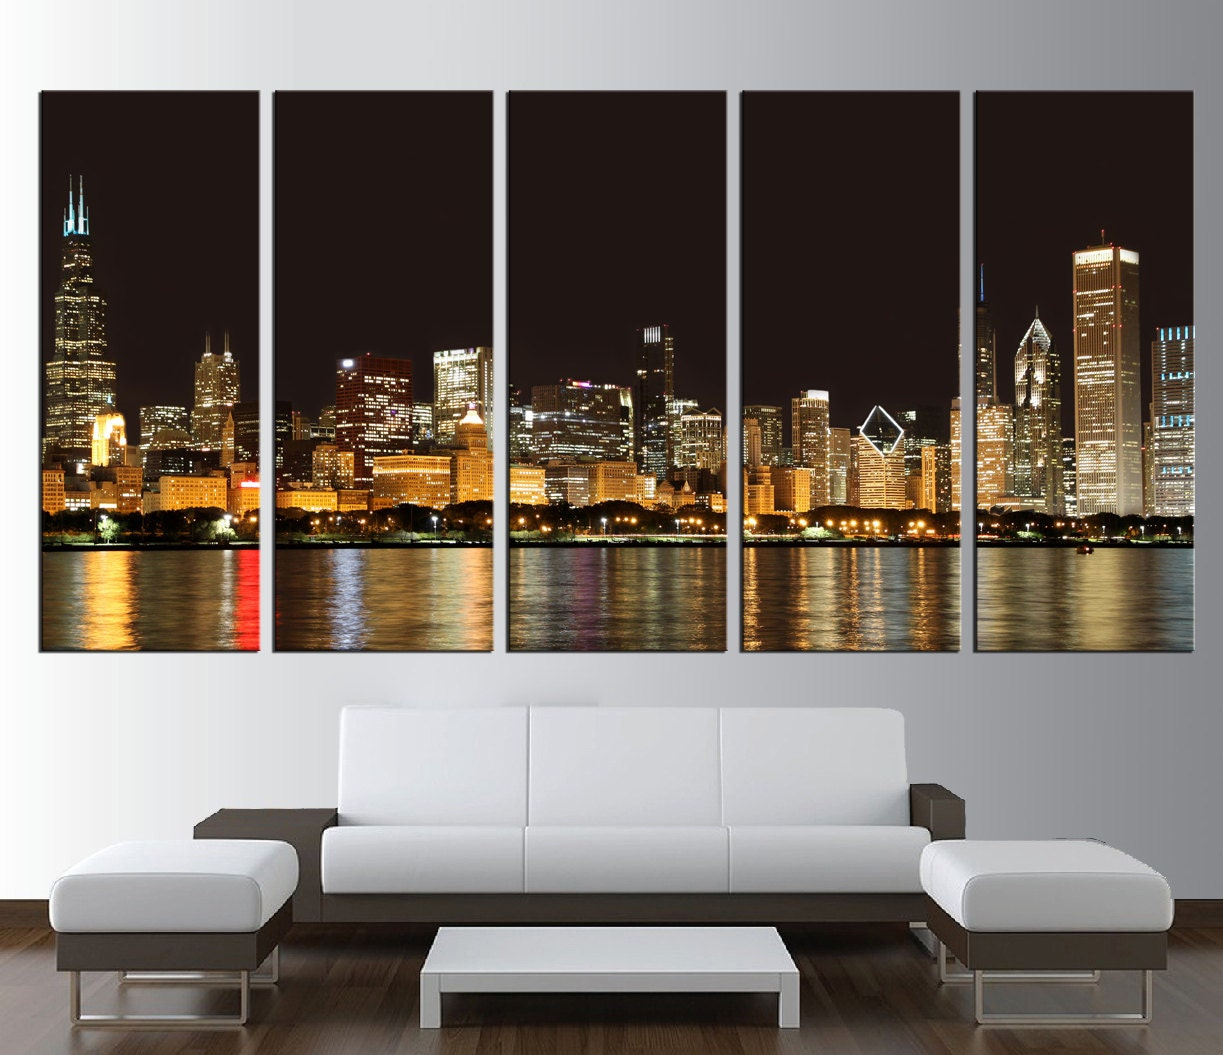 New York City Skyline Canvas Wall Art Large Art New York: Large Print Chicago Skyline Wall Art Canvas Extra By